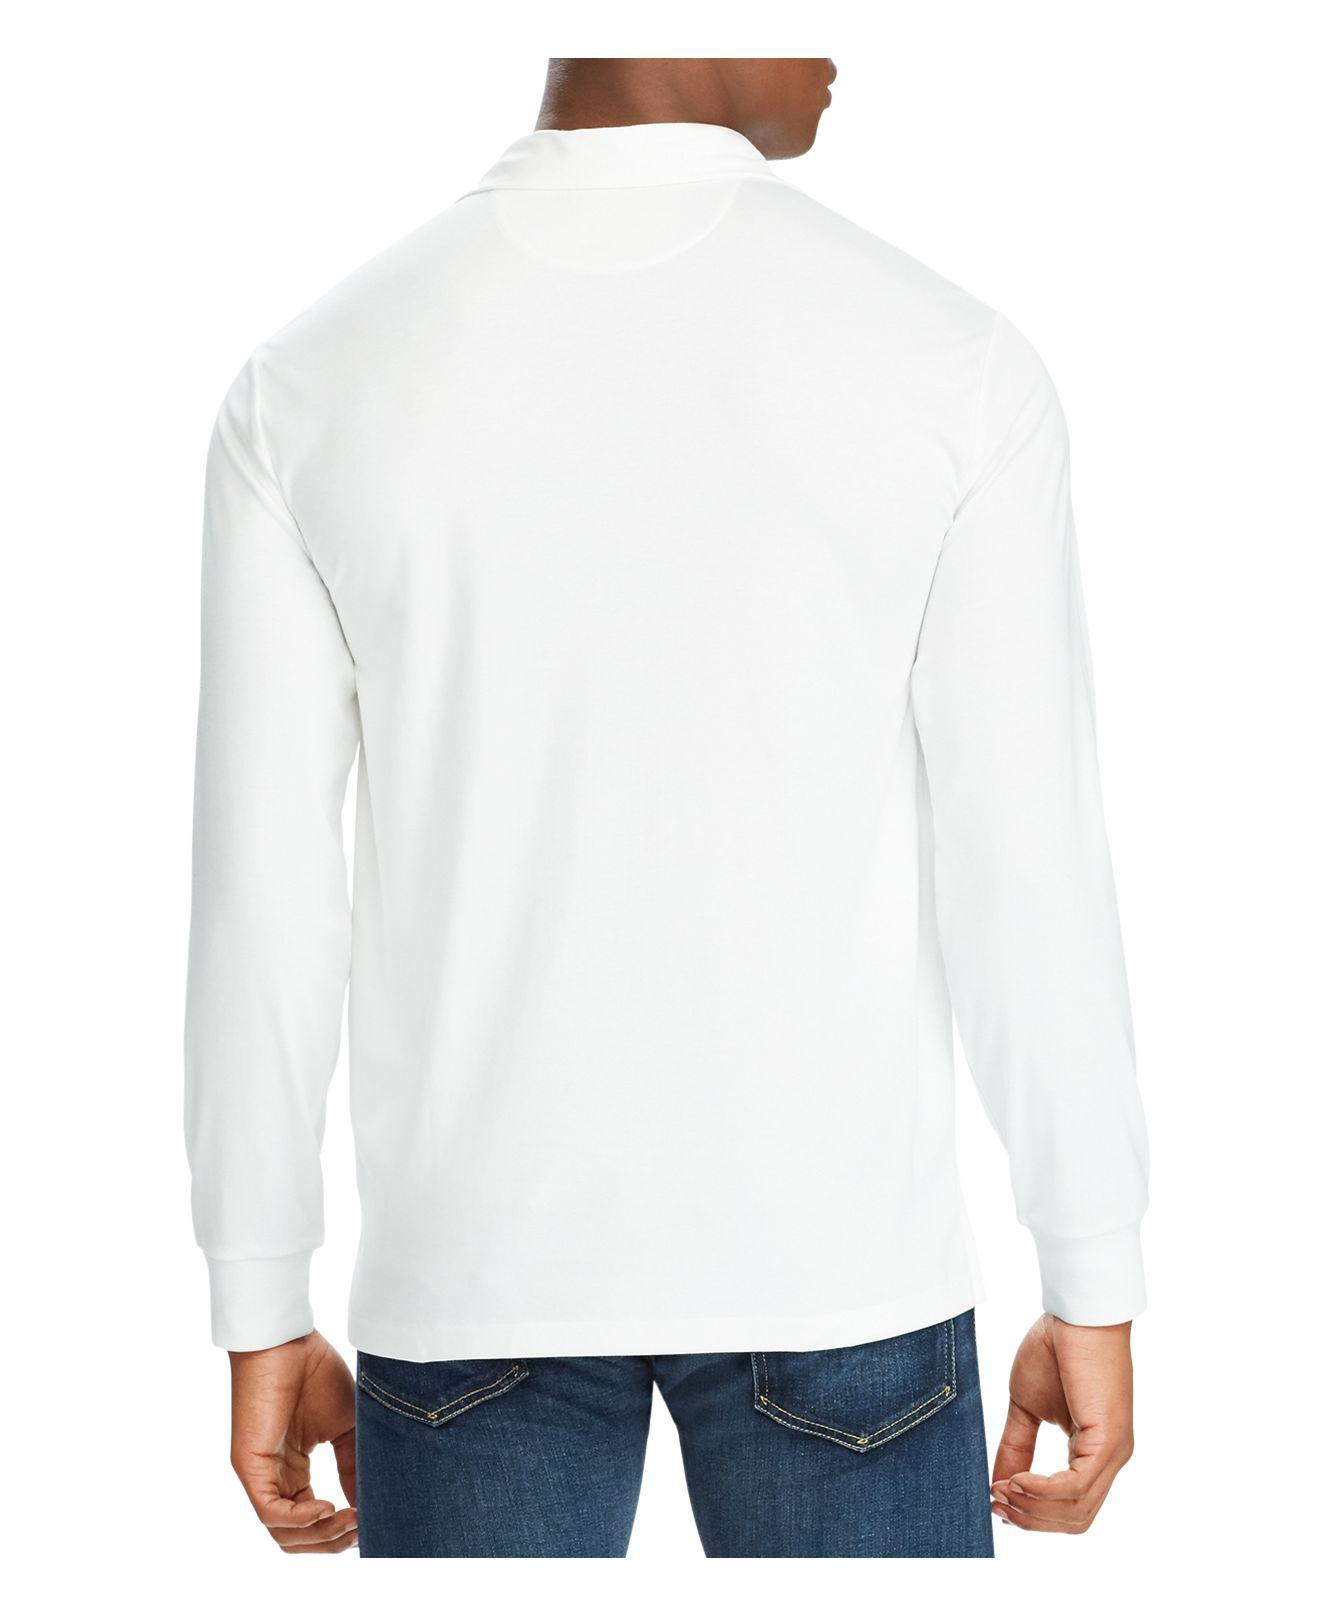 04a66103bc Lyst - Polo Ralph Lauren Classic Fit Soft-touch Long Sleeve Polo ...